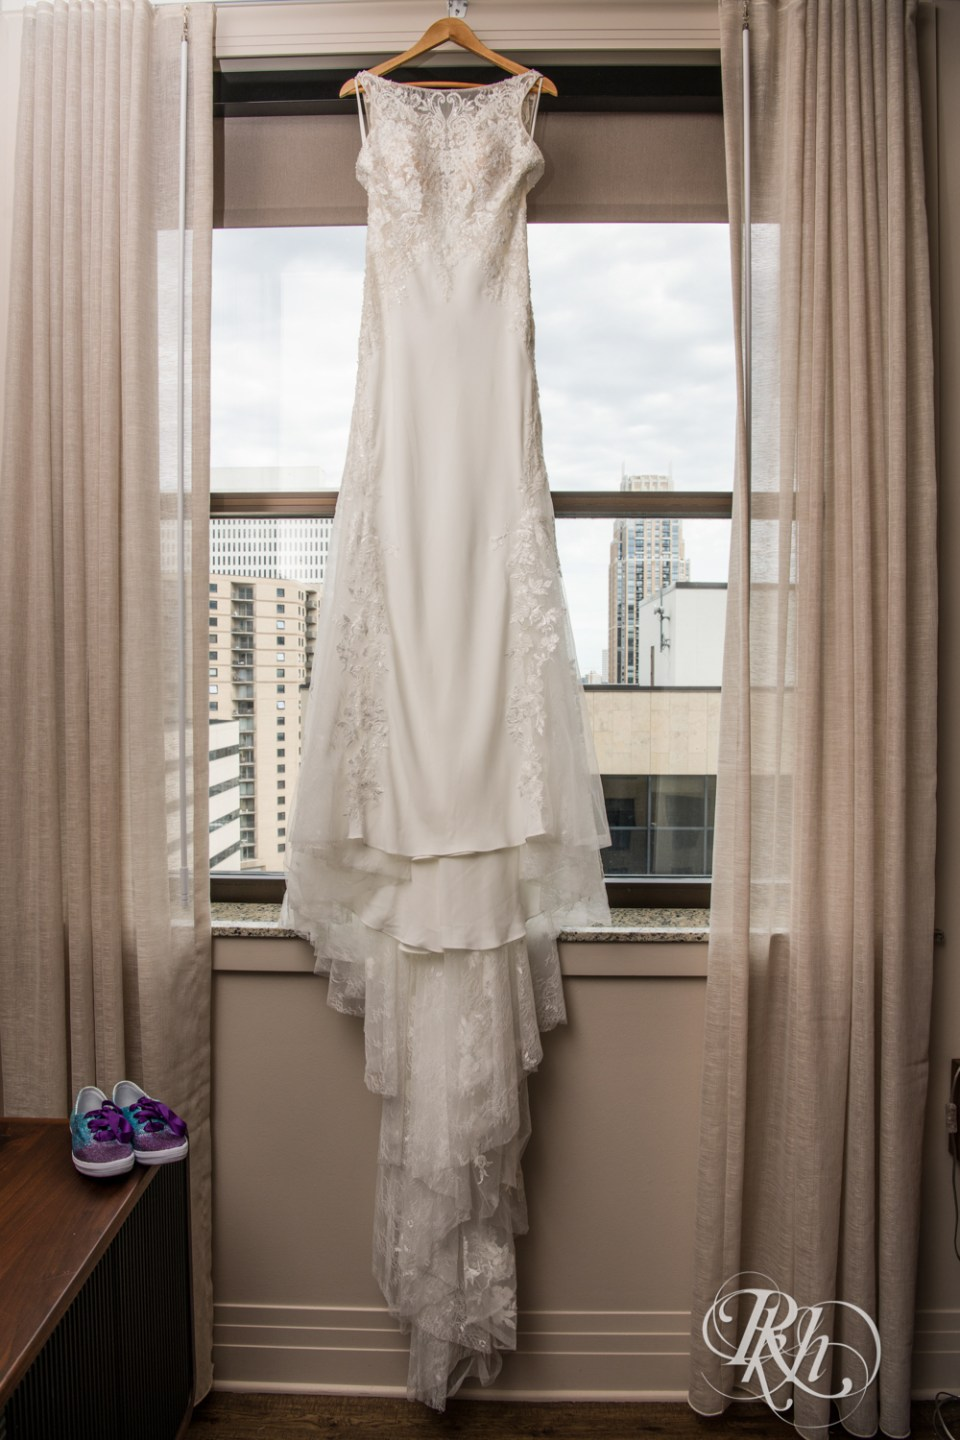 Wedding dress with glittery shoes